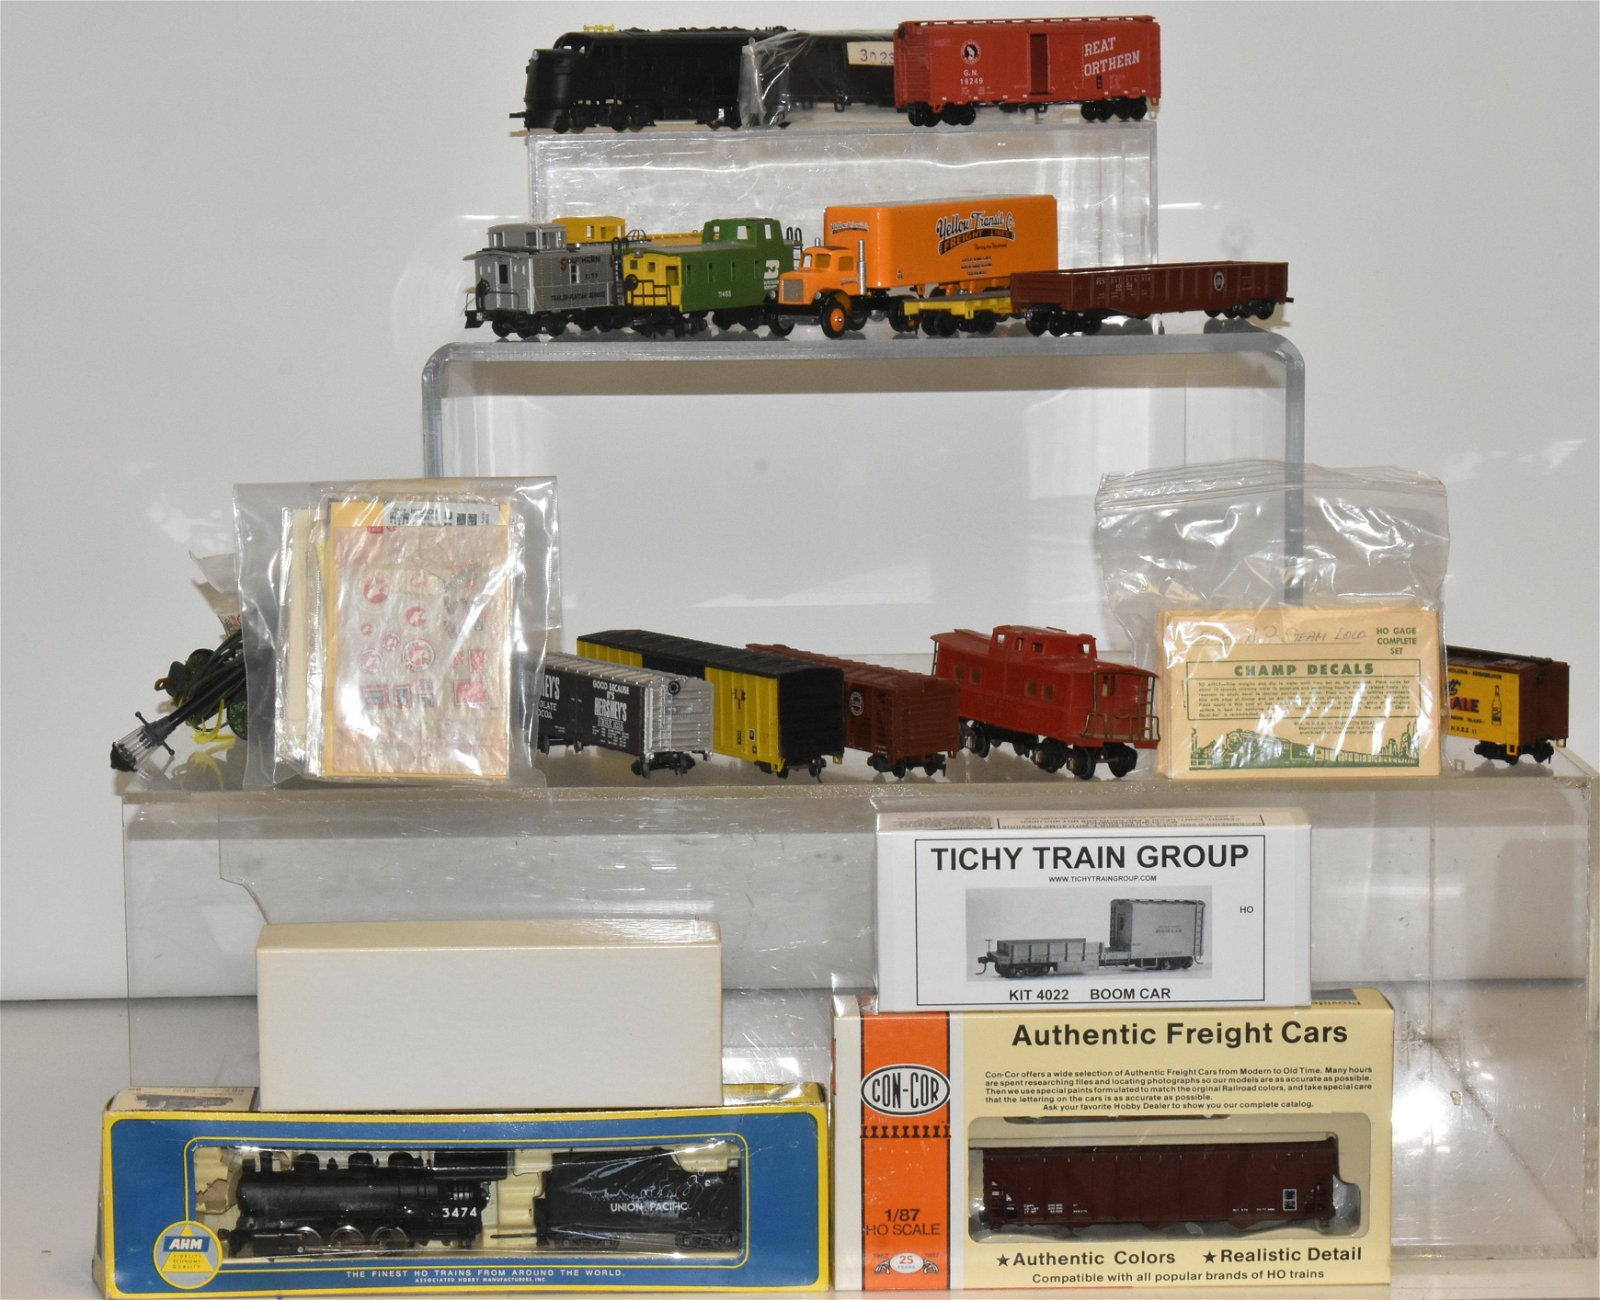 HO Gauge Trains and Accessories